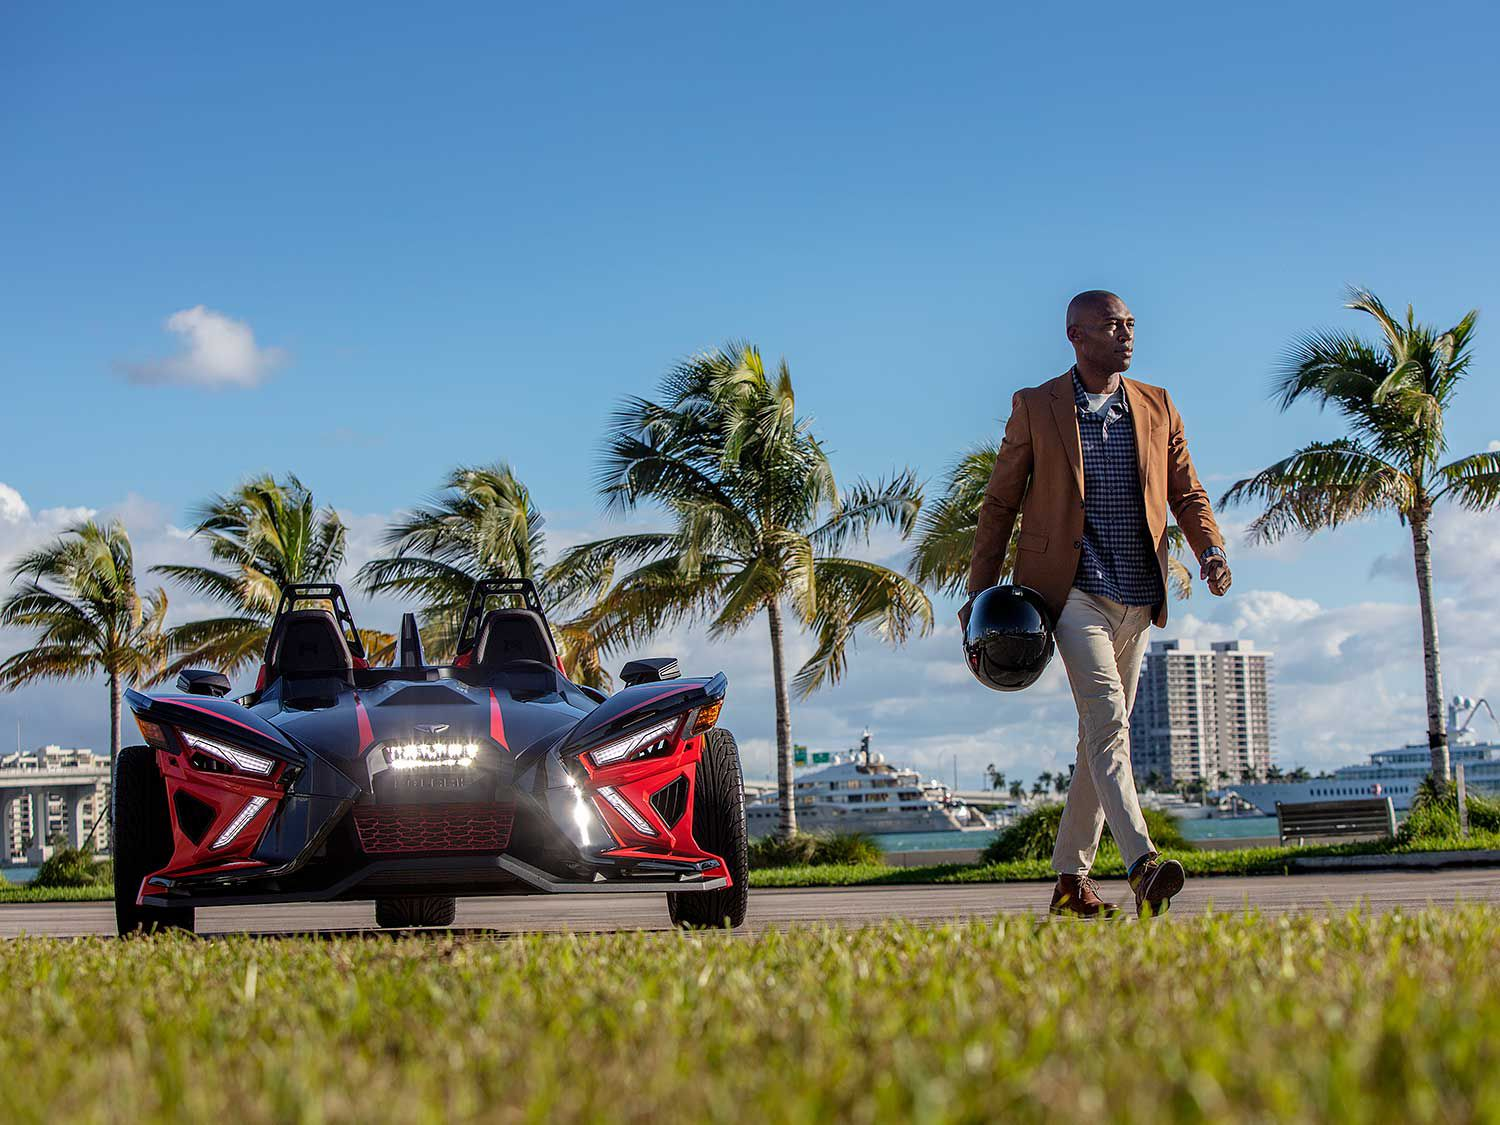 Slingshot wouldn't be a lifestyle product without an accessory package, and the so-called Design Series (seen in the foreground) adds a painted front grille, tinted wind deflector, special paint, and Slingshade roof enclosure.